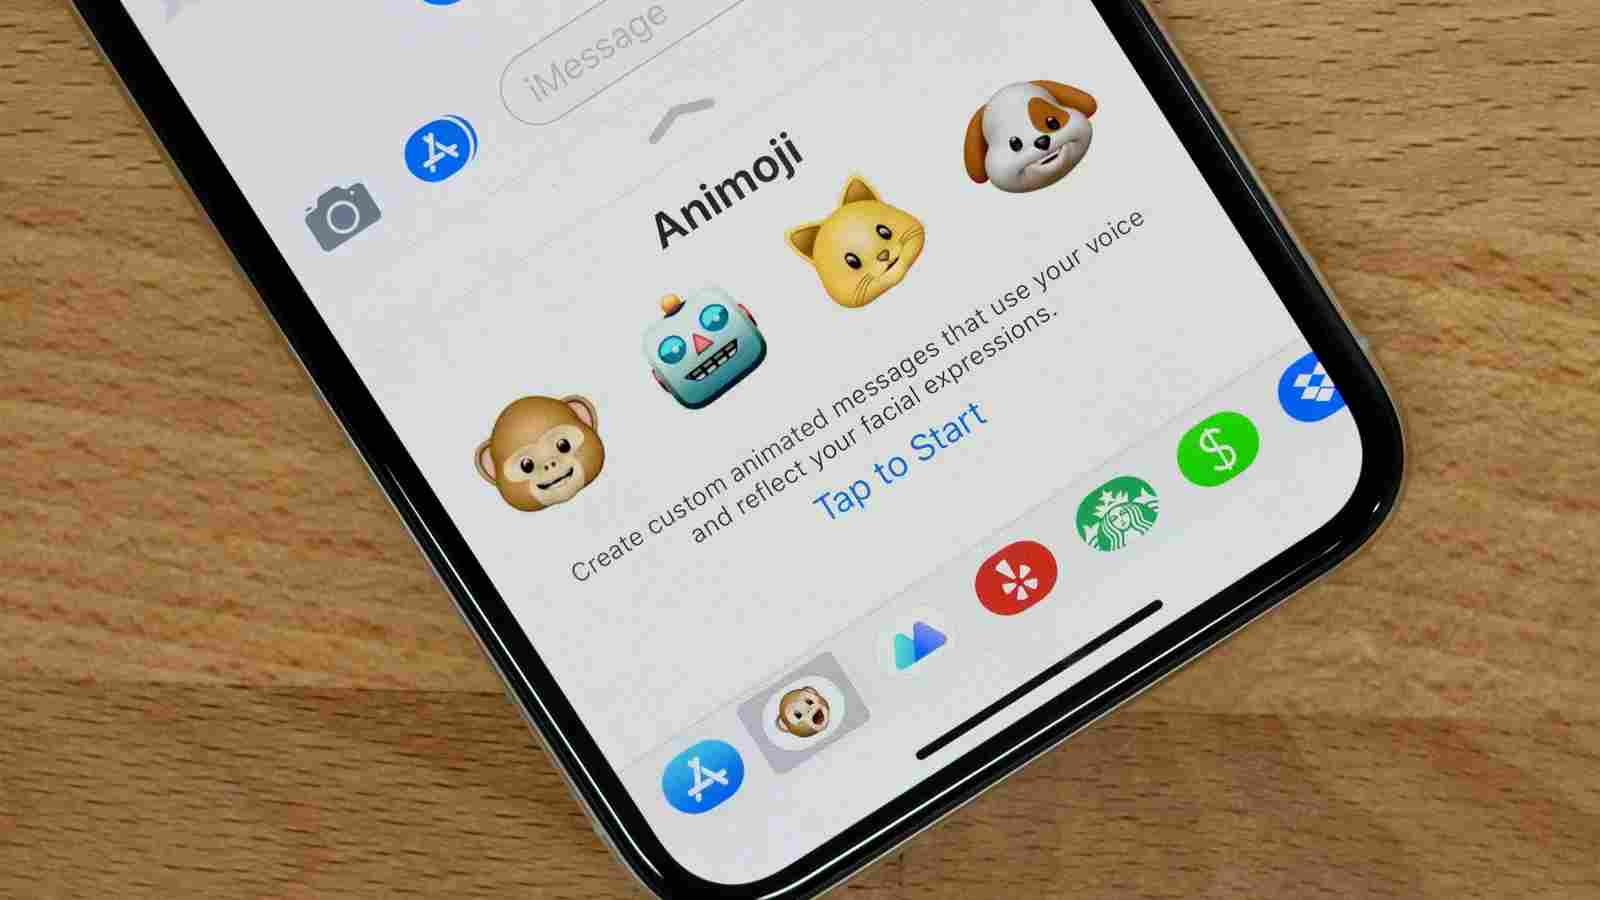 Get iPhone X Animoji Emojis In 2mins On Any Android Phone